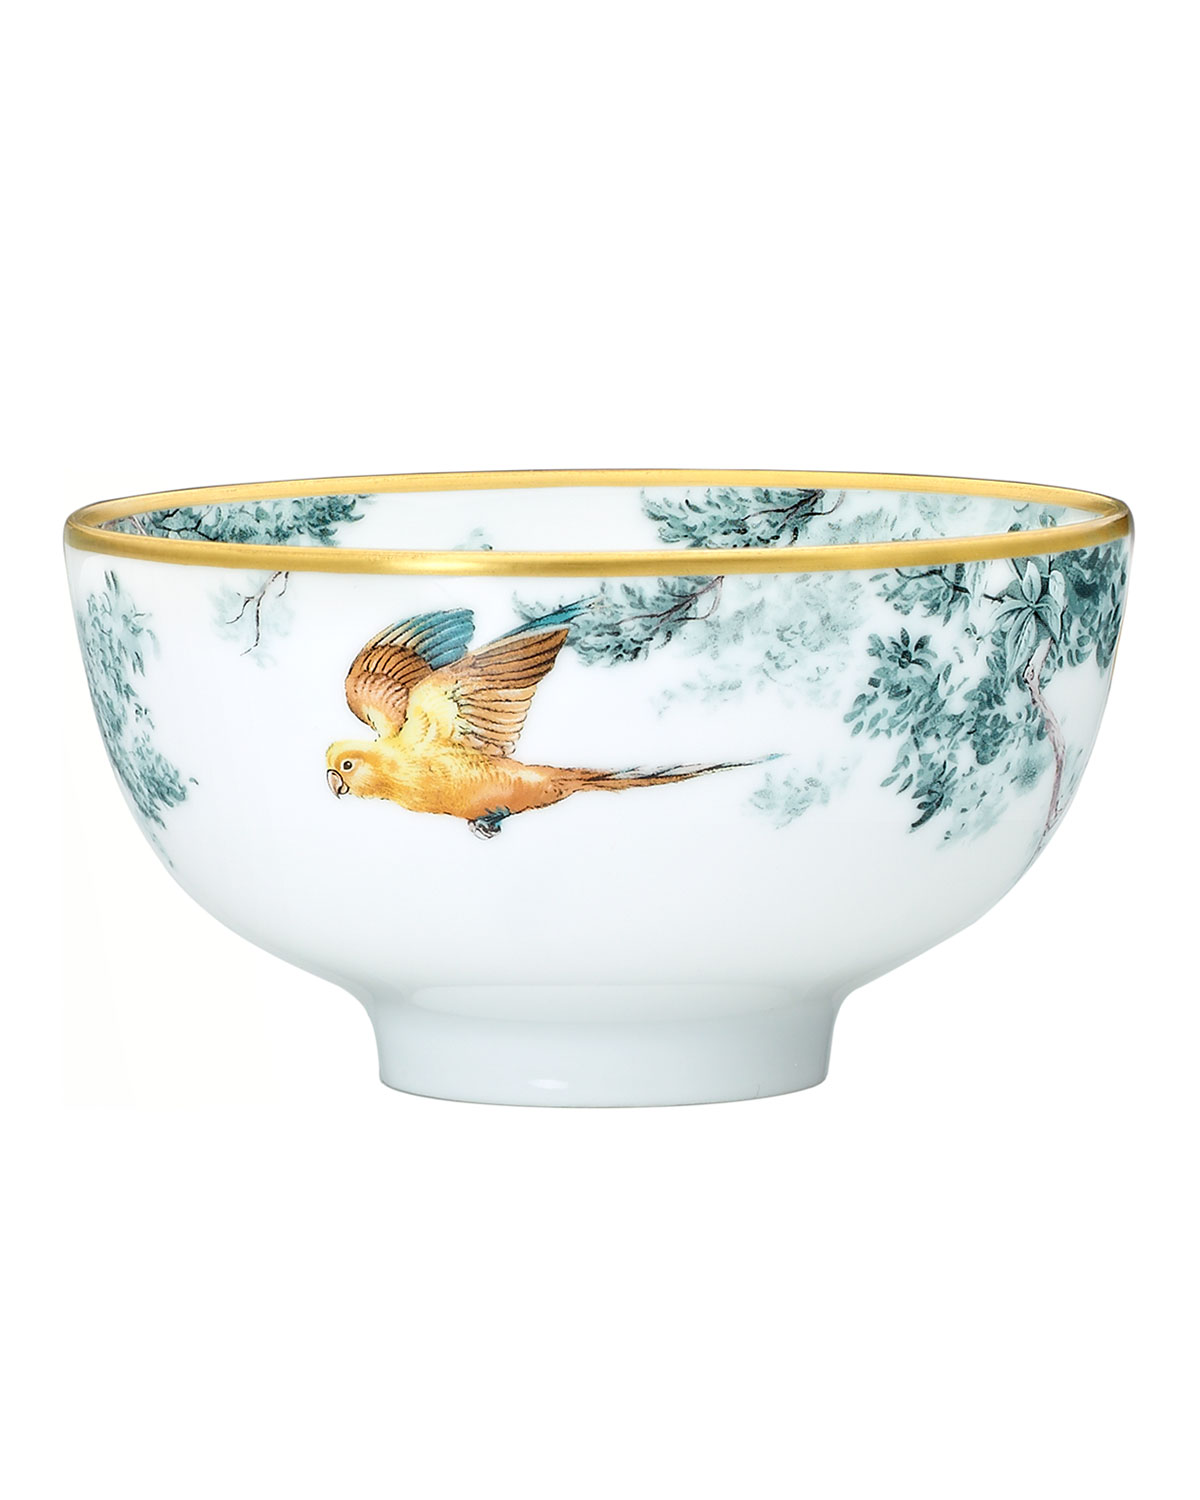 Hermès Carnets D'Equateur Birds Medium Bowl